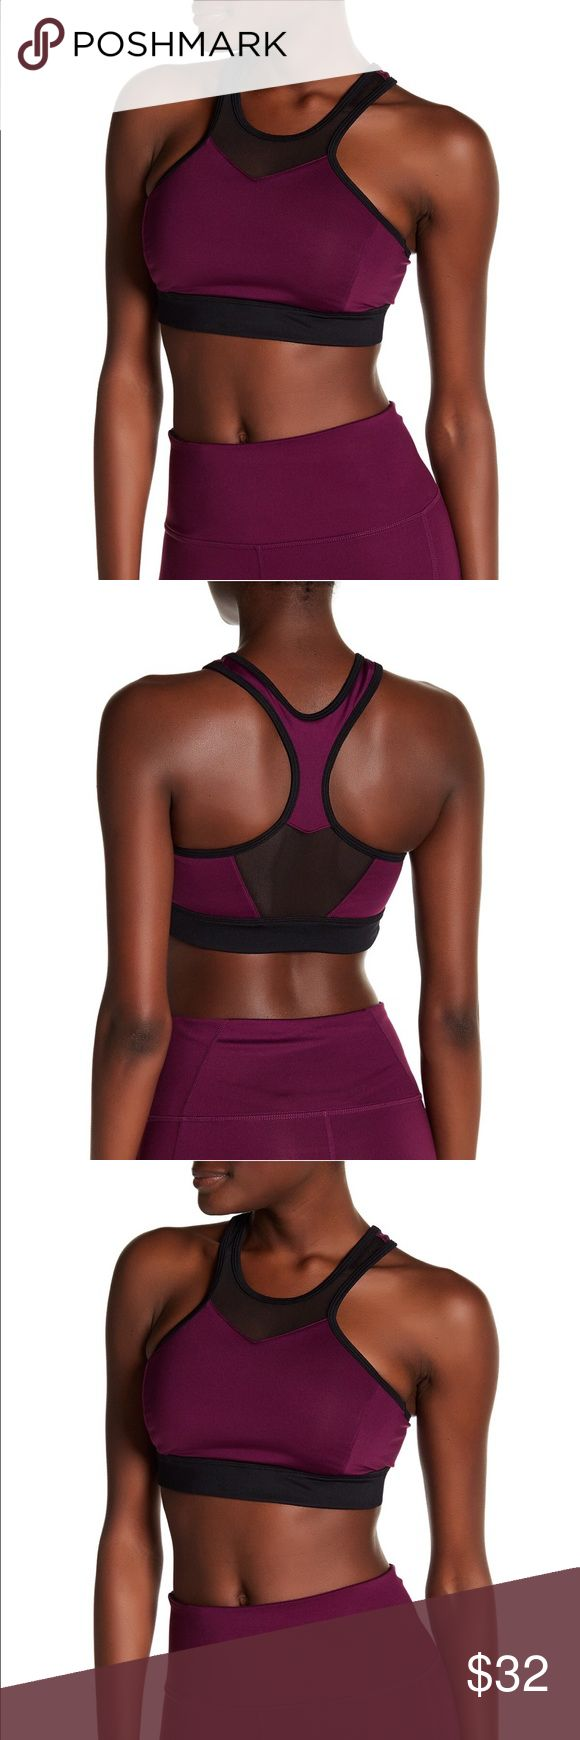 Z by Zella Baja Racerback purple sports bra About This Item Details - Scoop neck - Sleeveless - Racerback - Mesh construction - Imported Fiber Content Body: 88% polyester, 12% spandex Mesh: 80% polyester, 20% spandex Care Machine wash cold Additional Info Fit: this style fits true to size. Zella Intimates & Sleepwear Bras